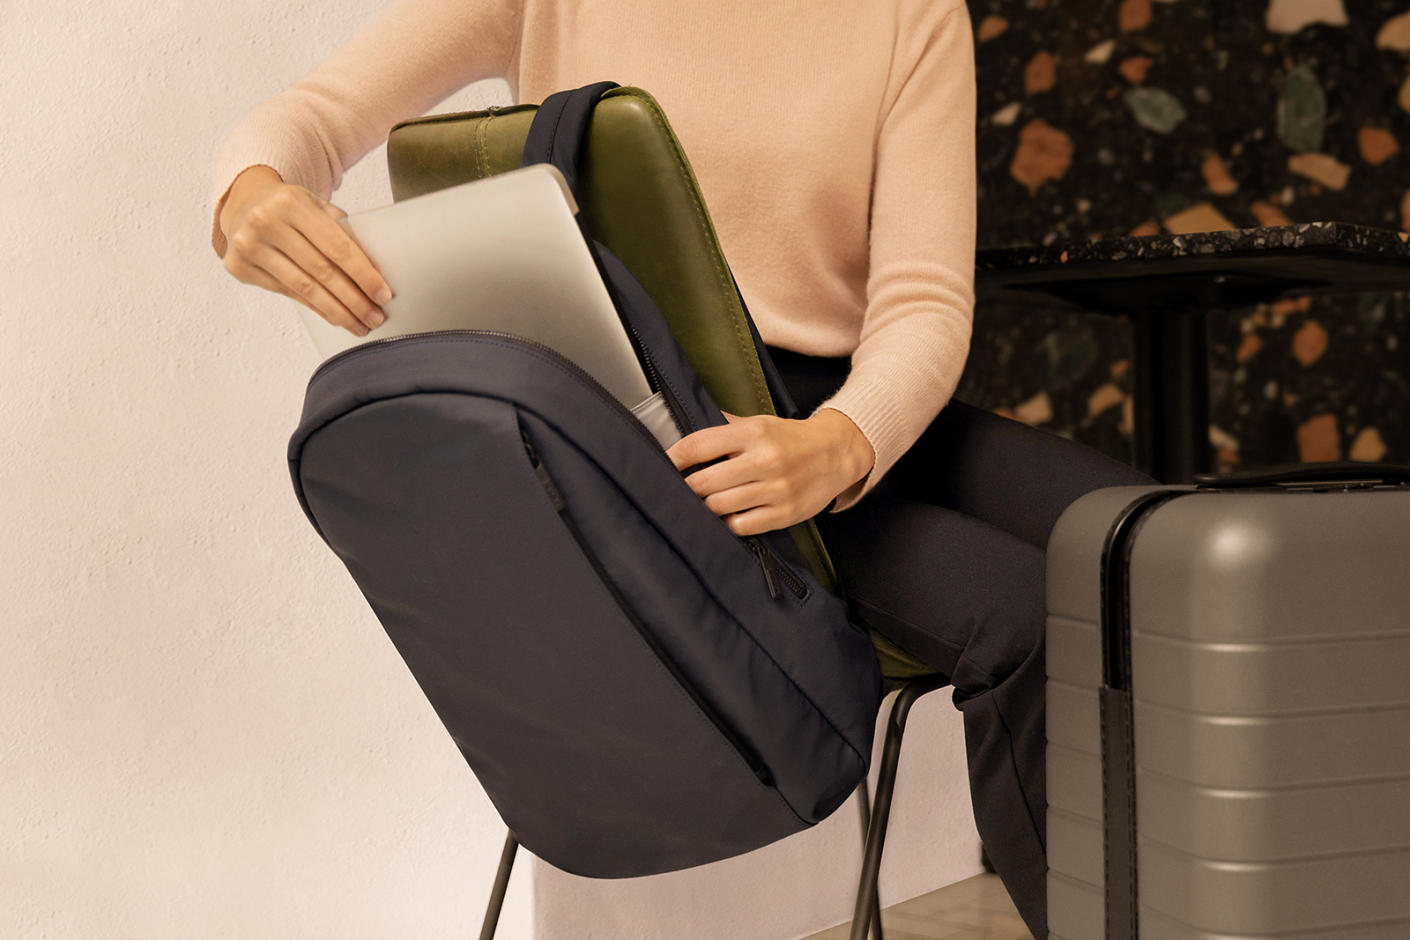 A person sitting on a chair, taking out a laptop from a gray small backpack with a gray hard shell suitcase next to her.